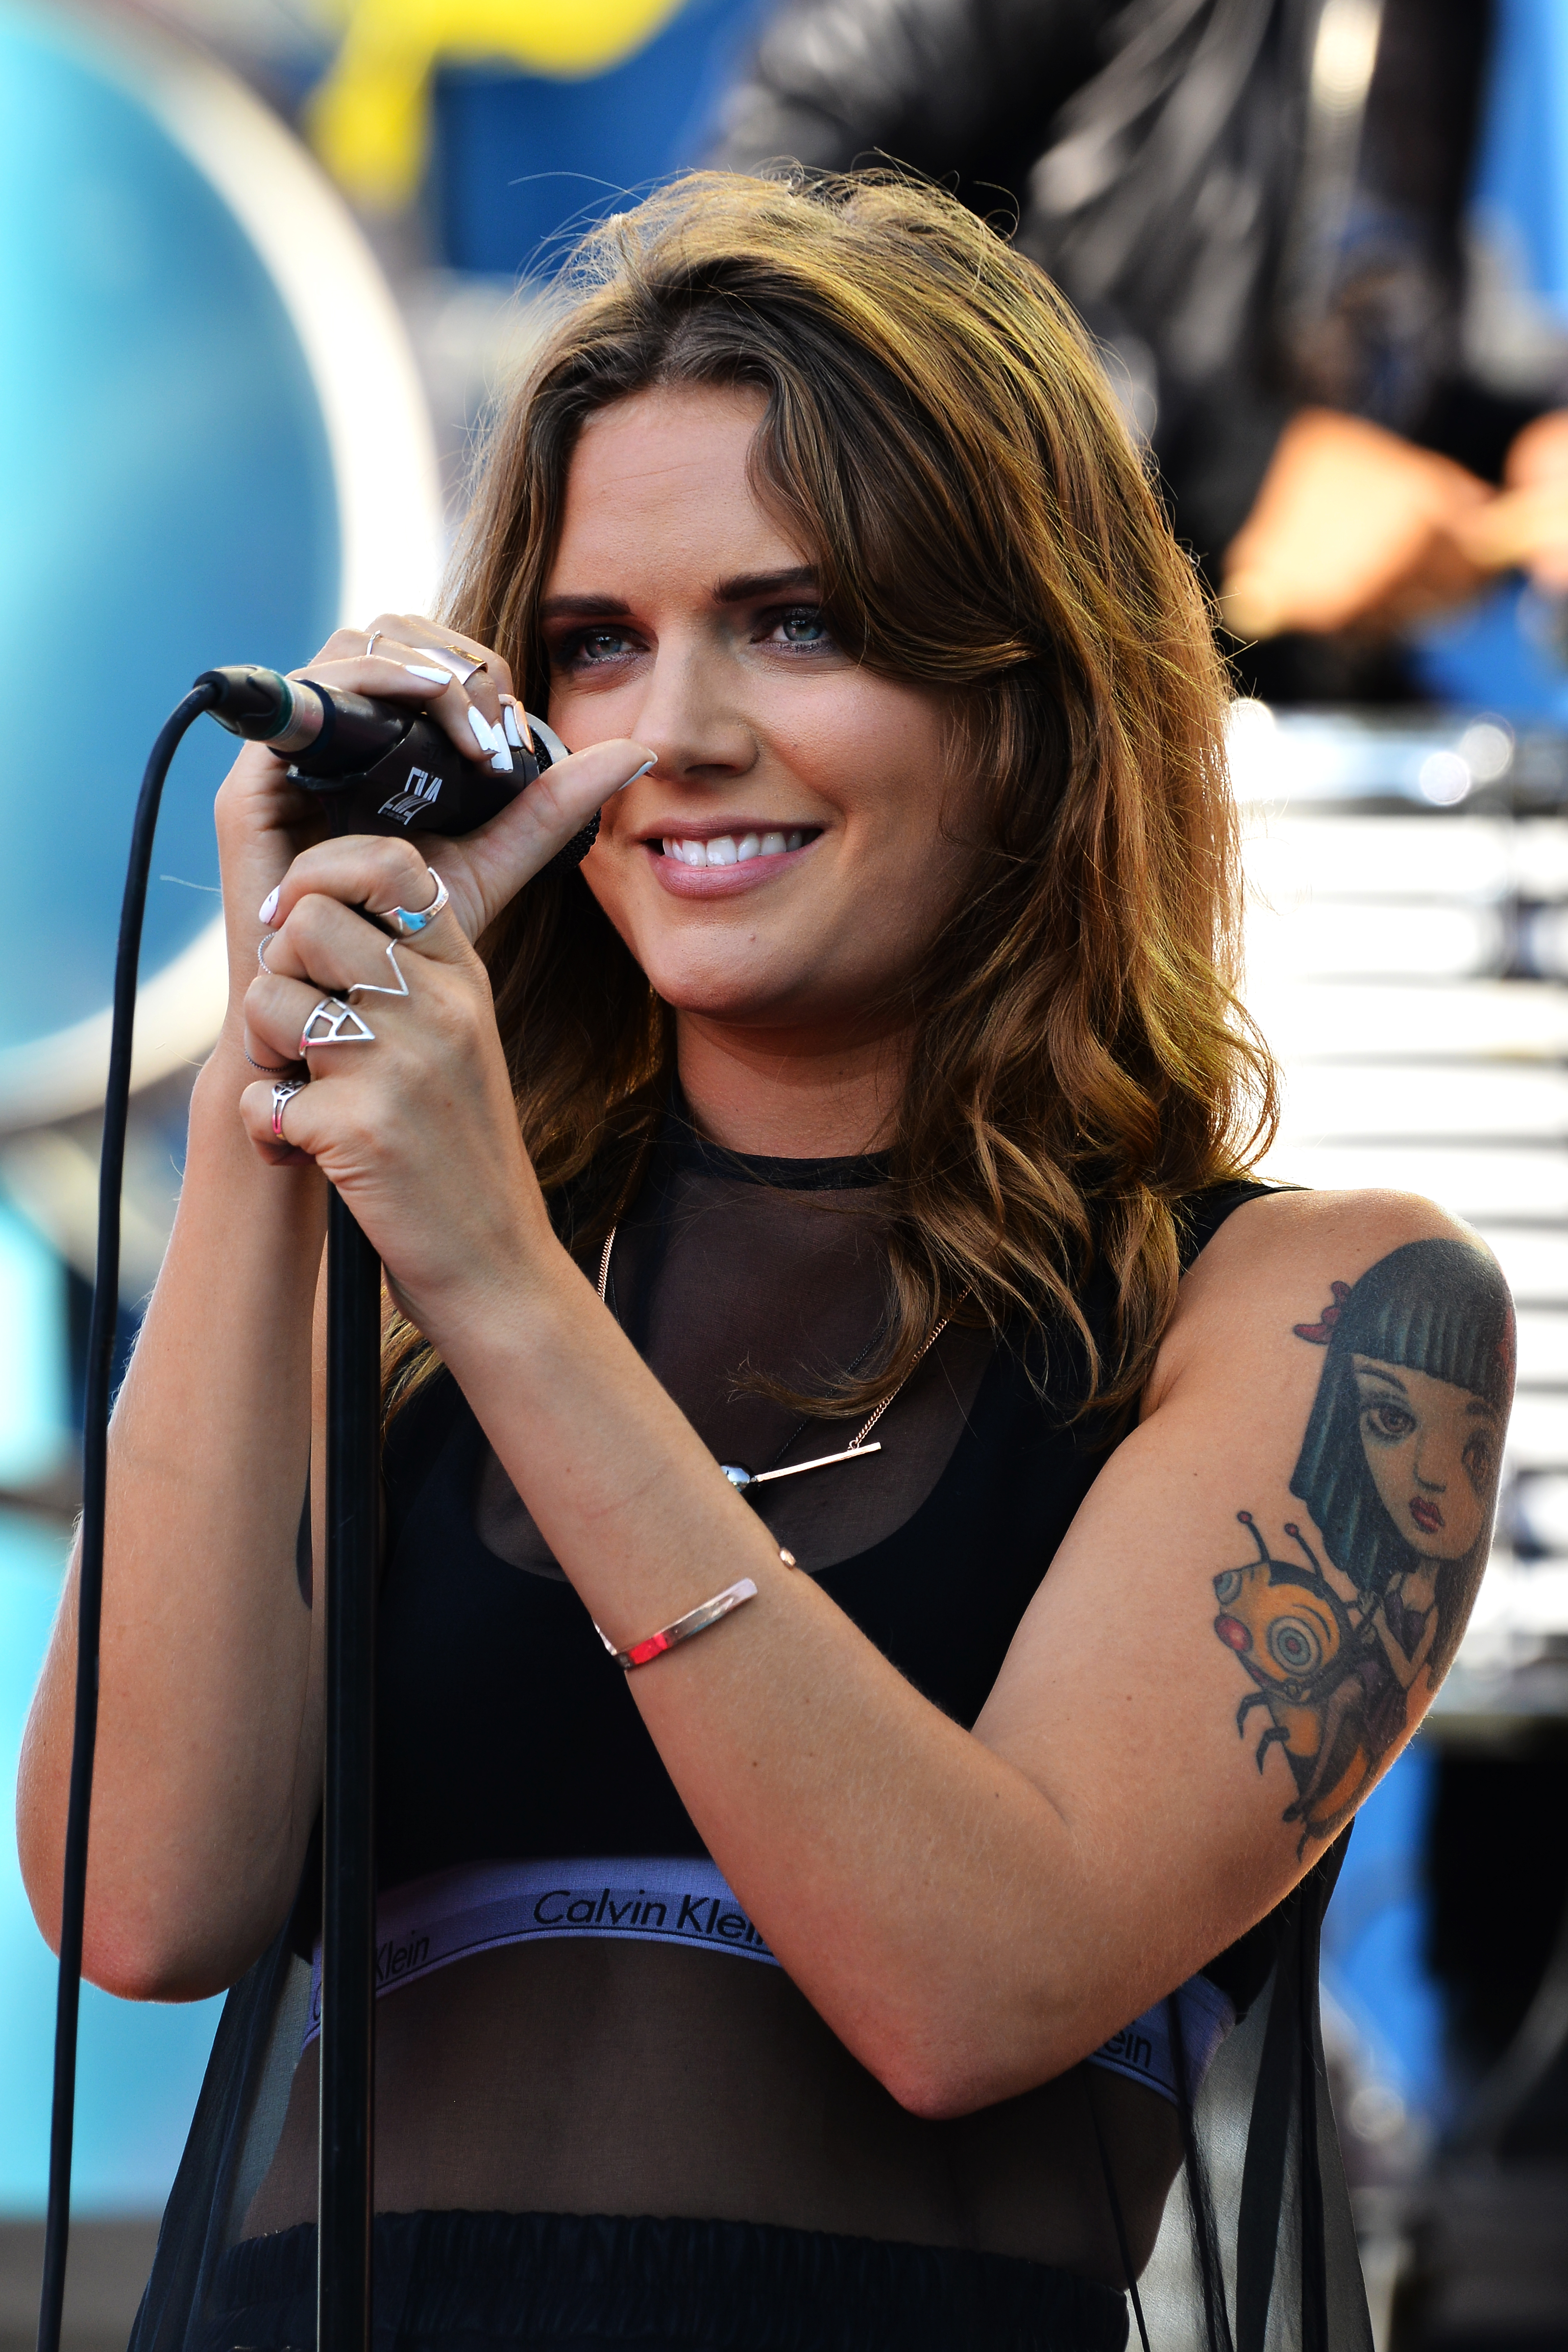 Hacked Tove Lo nudes (11 photos), Topless, Leaked, Feet, cameltoe 2020